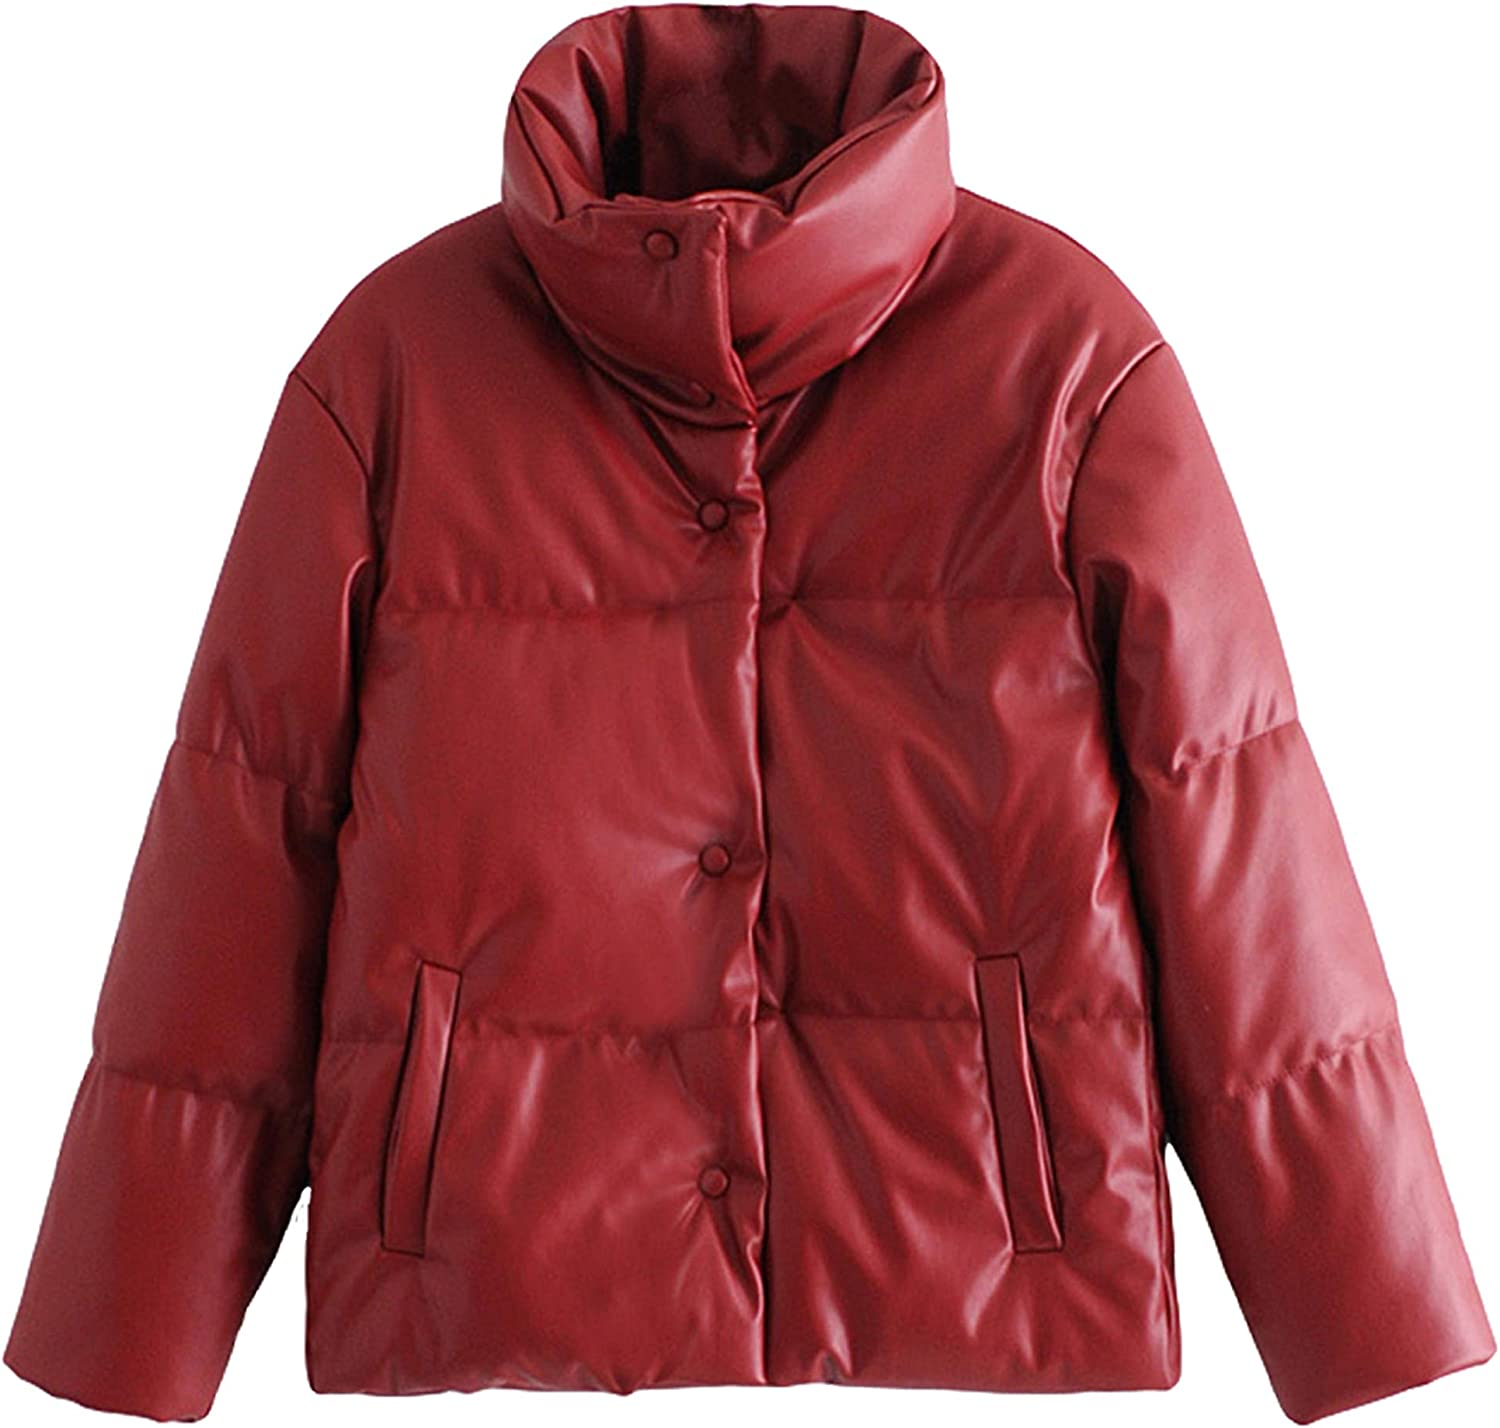 Springrain Women's Casual Lapel Button Pu Faux Leather Winter Quilted Padded Coat